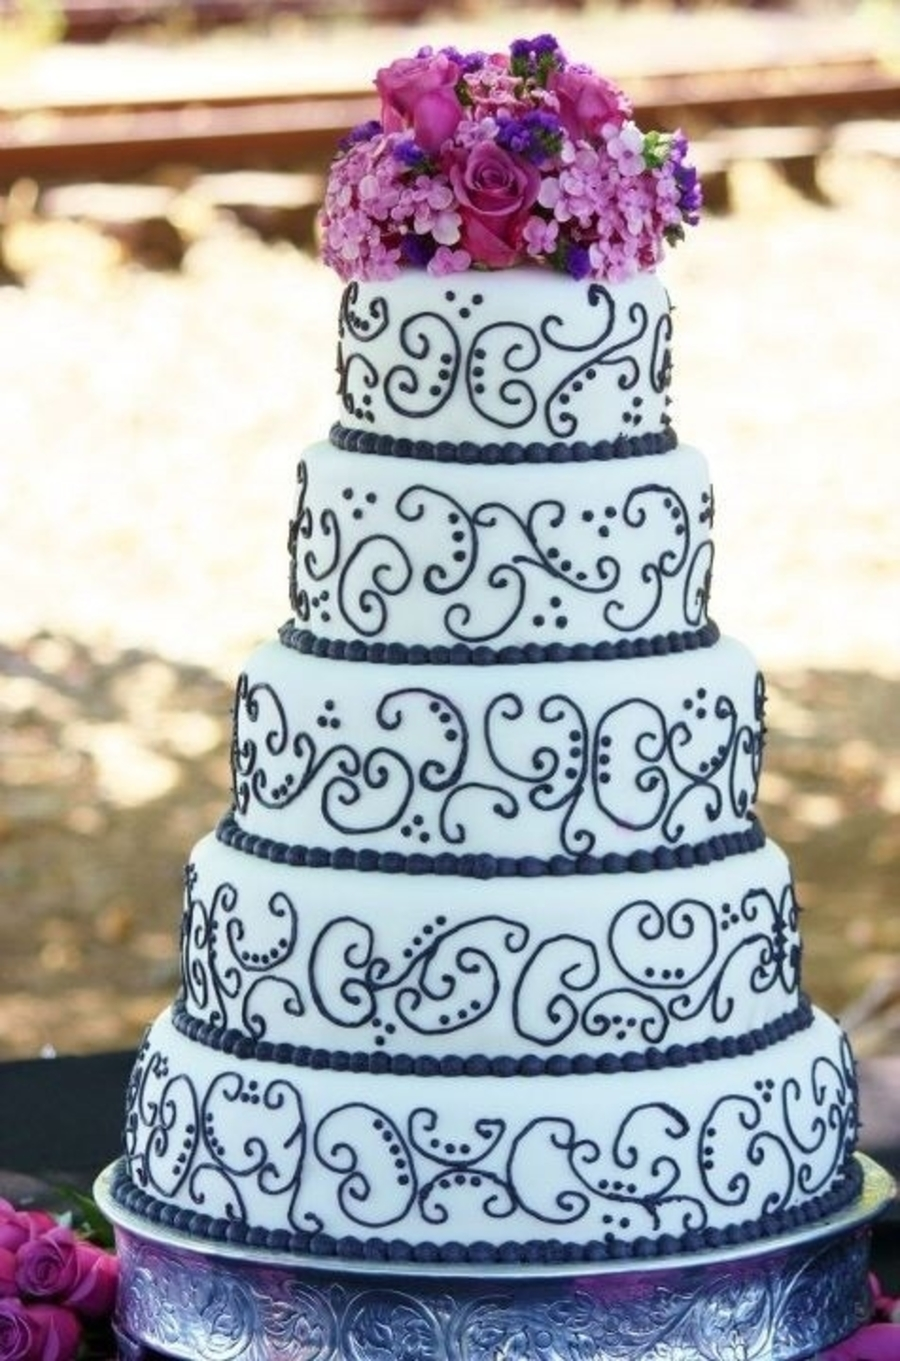 Black And White W/ Purple Wedding Cake - CakeCentral.com